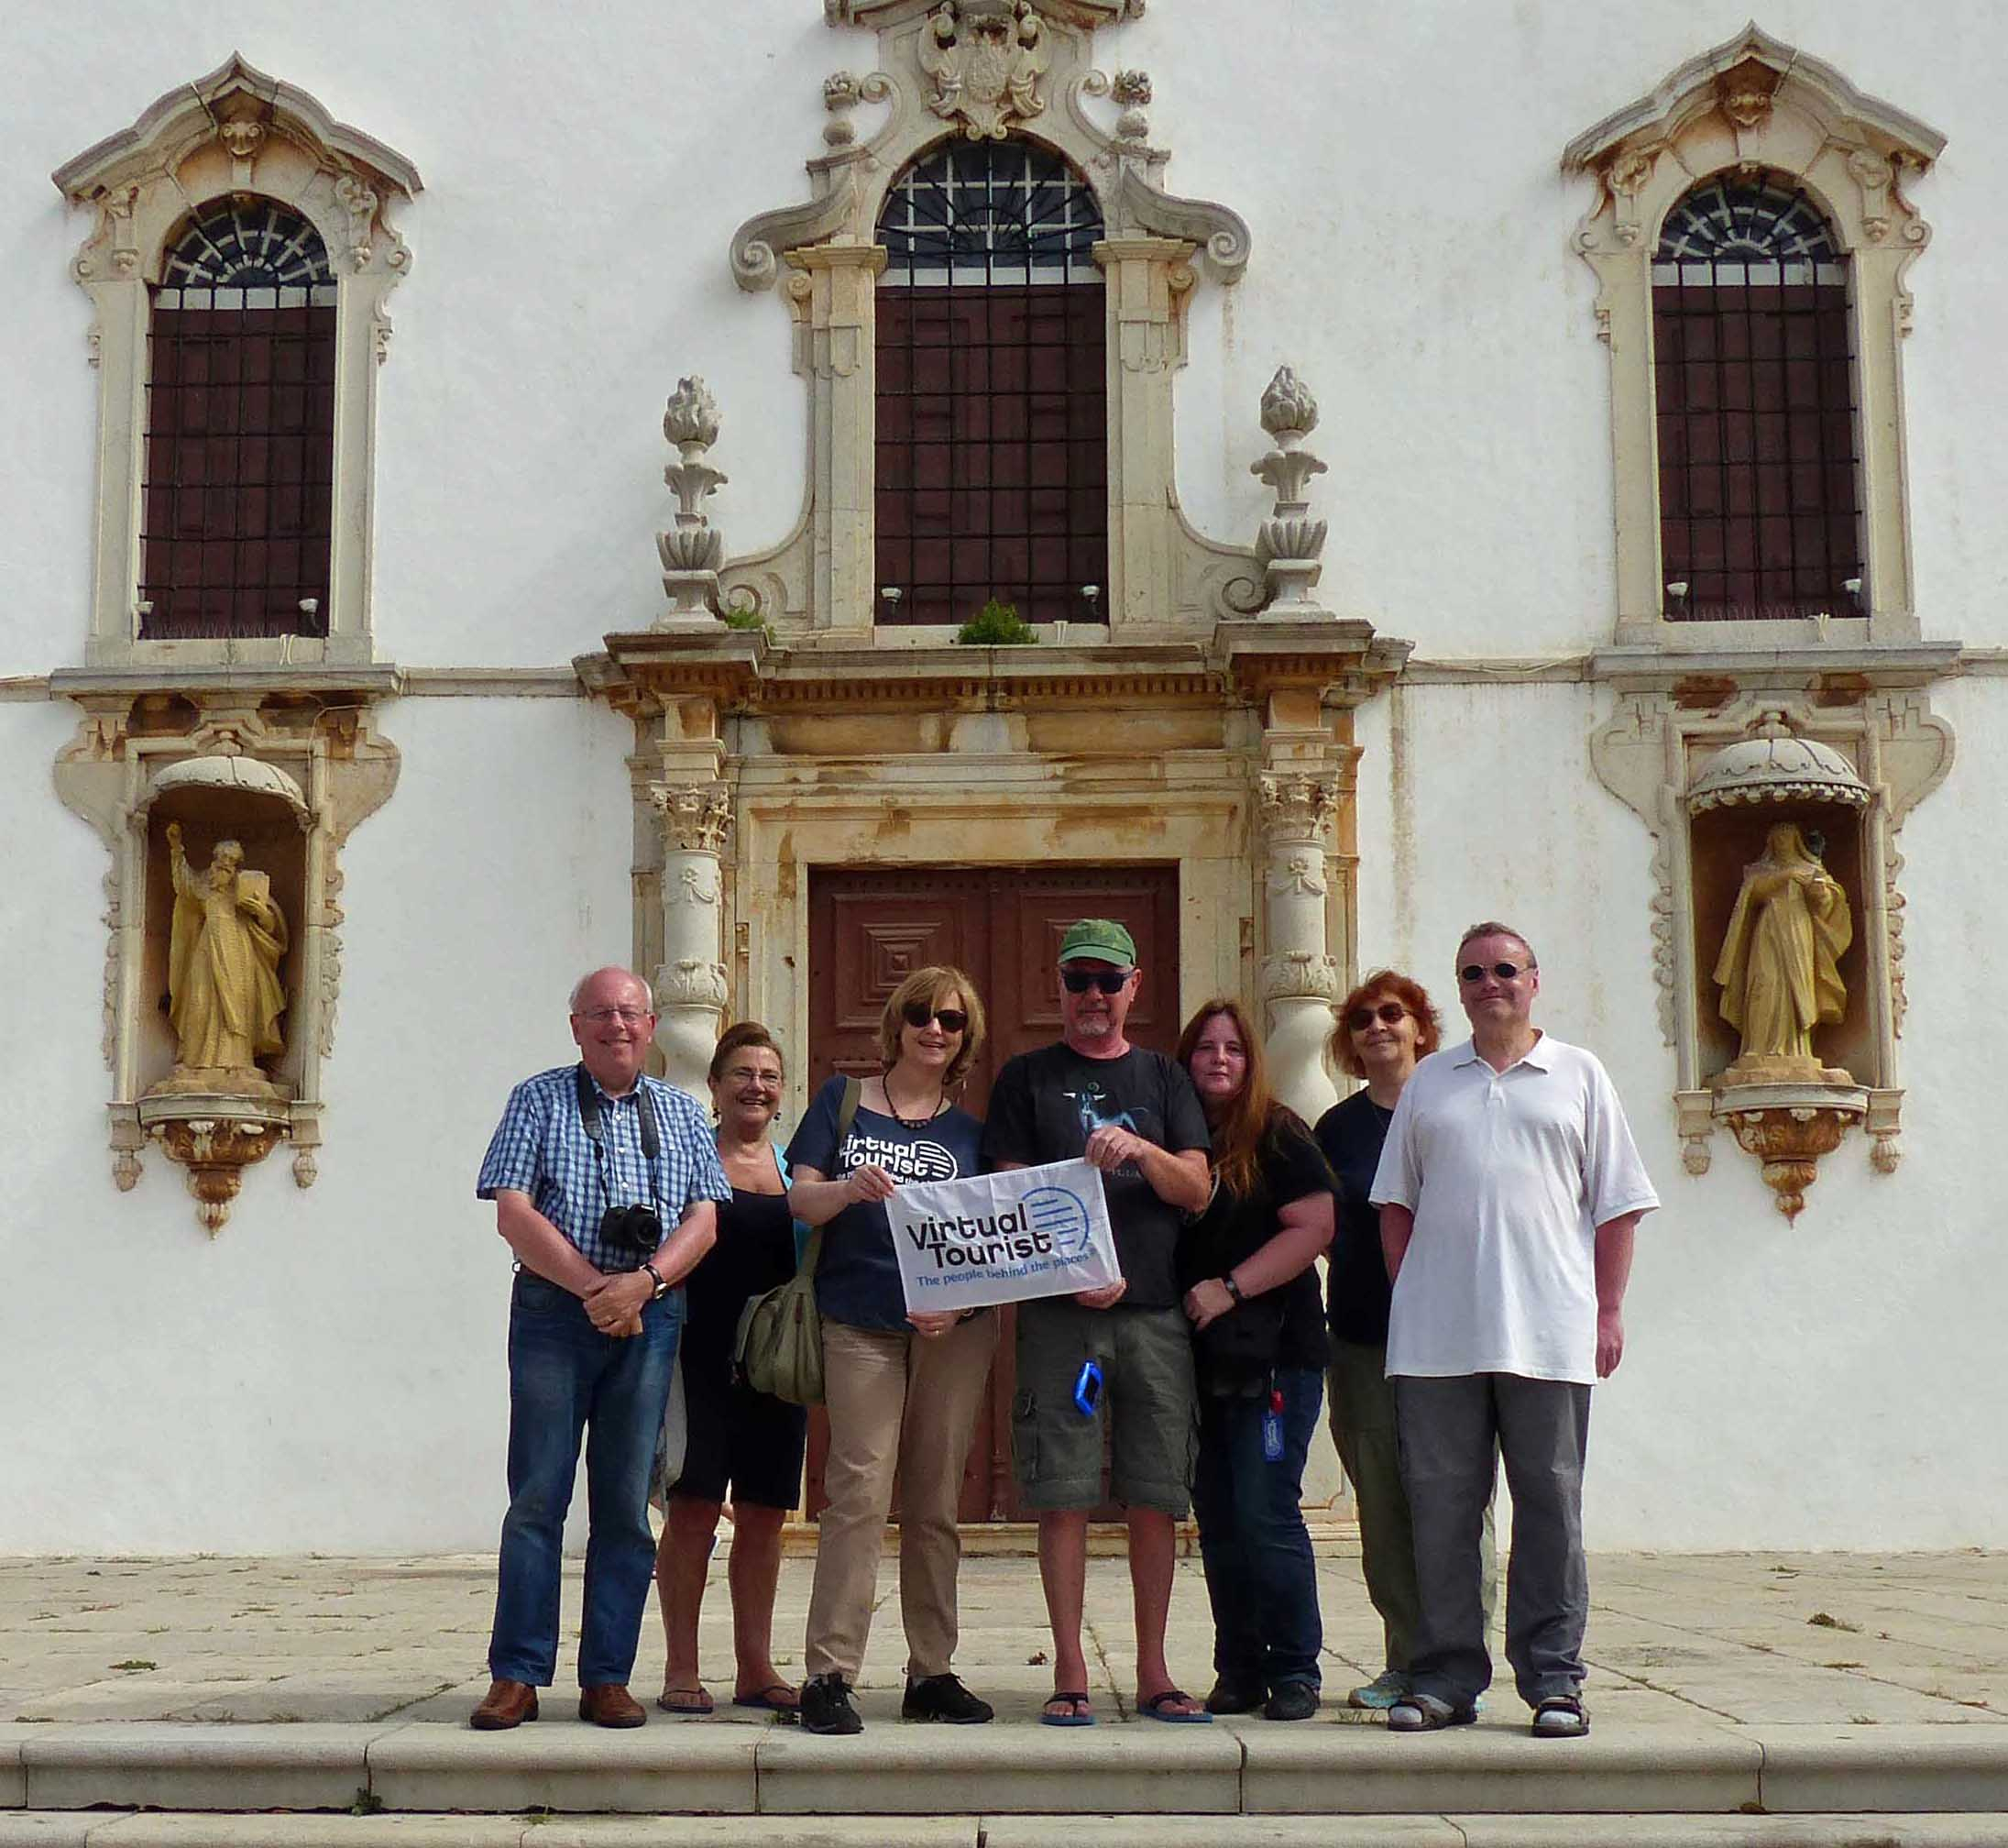 Group of people in front of a church